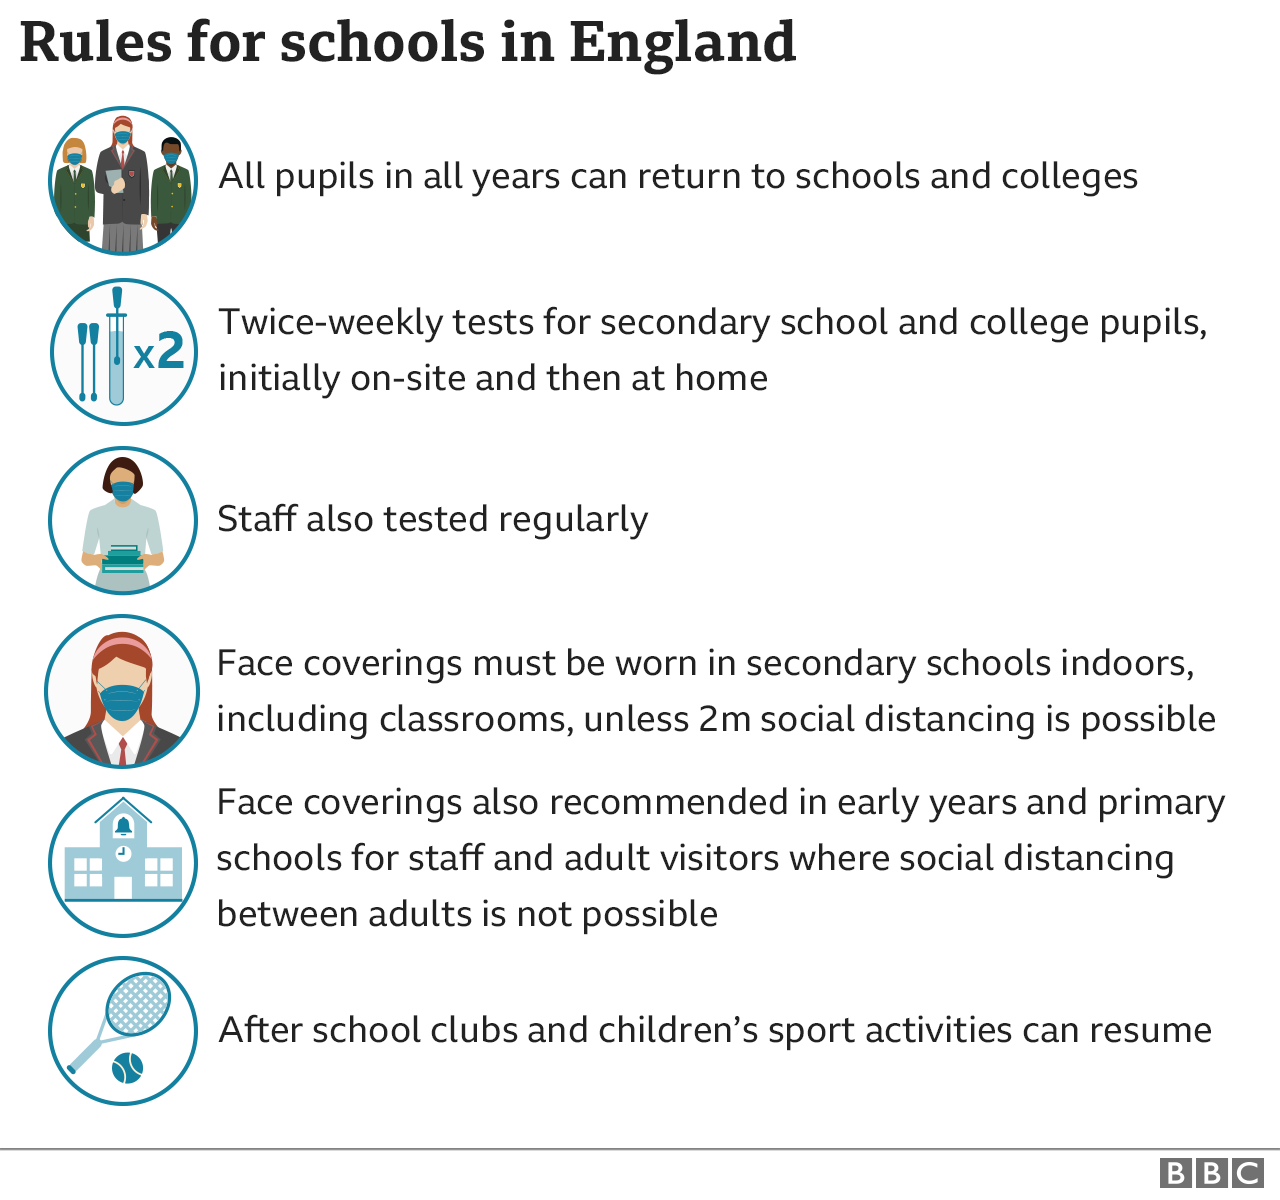 Rules for schools in England